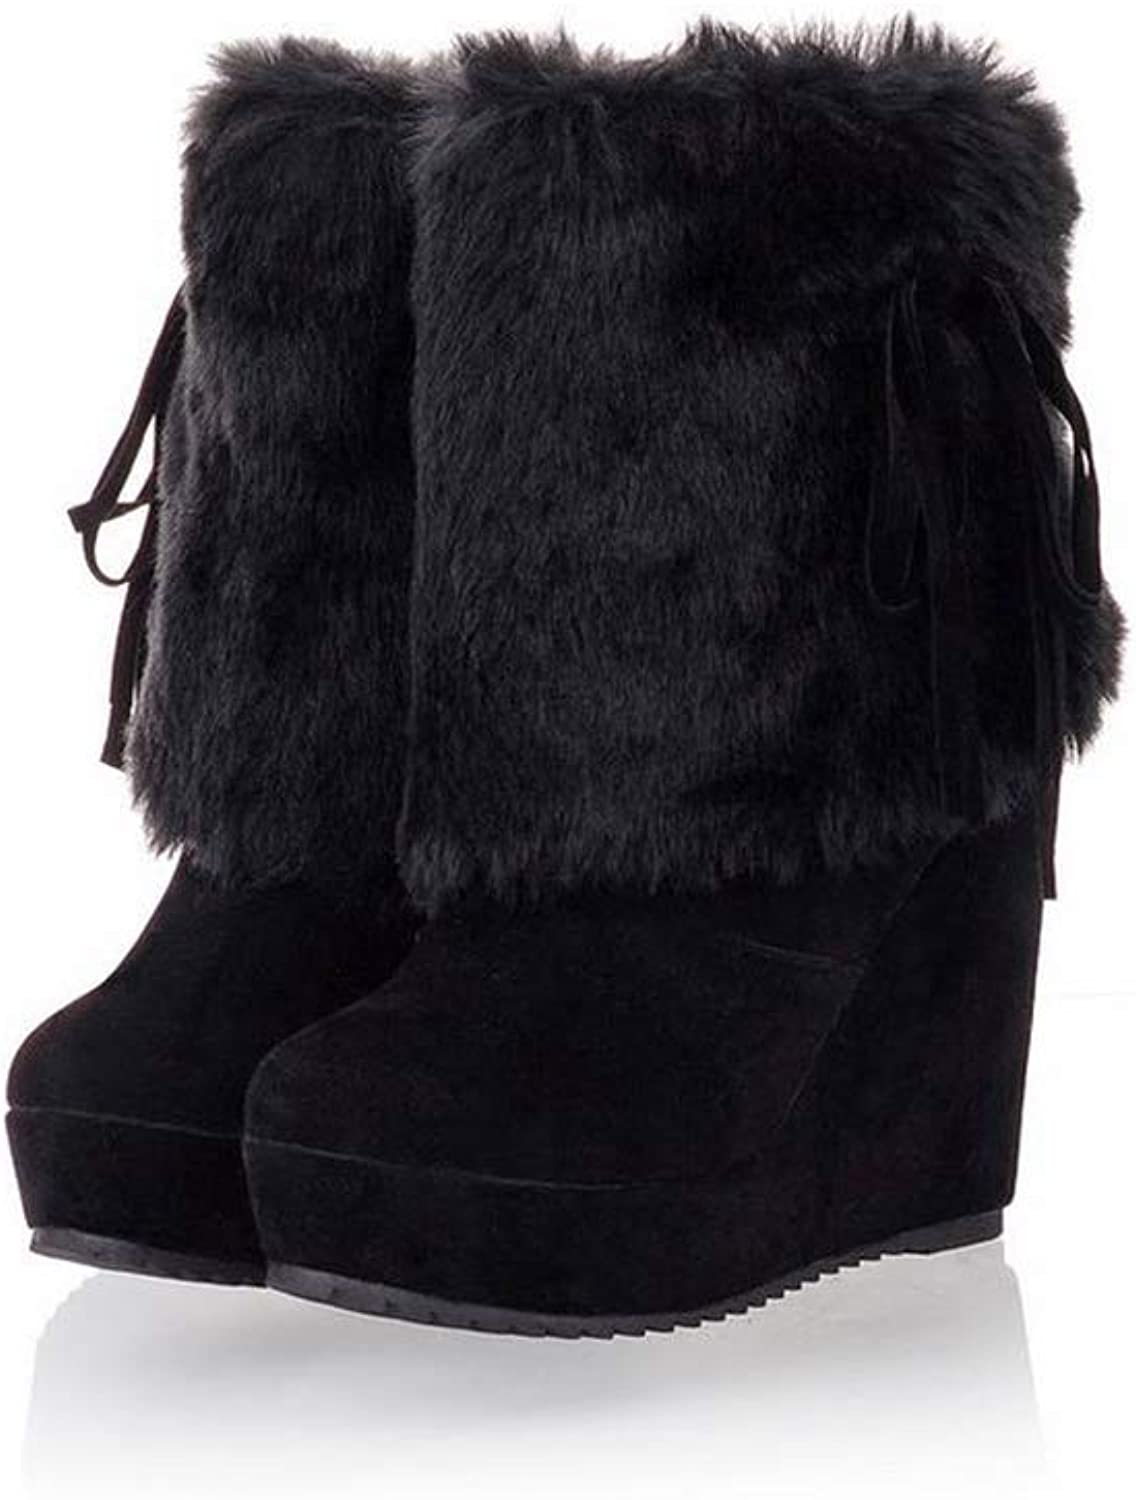 Boots Winter Wedge Round Toe shoes Keep Warm Slip-On Plush Snow Boots